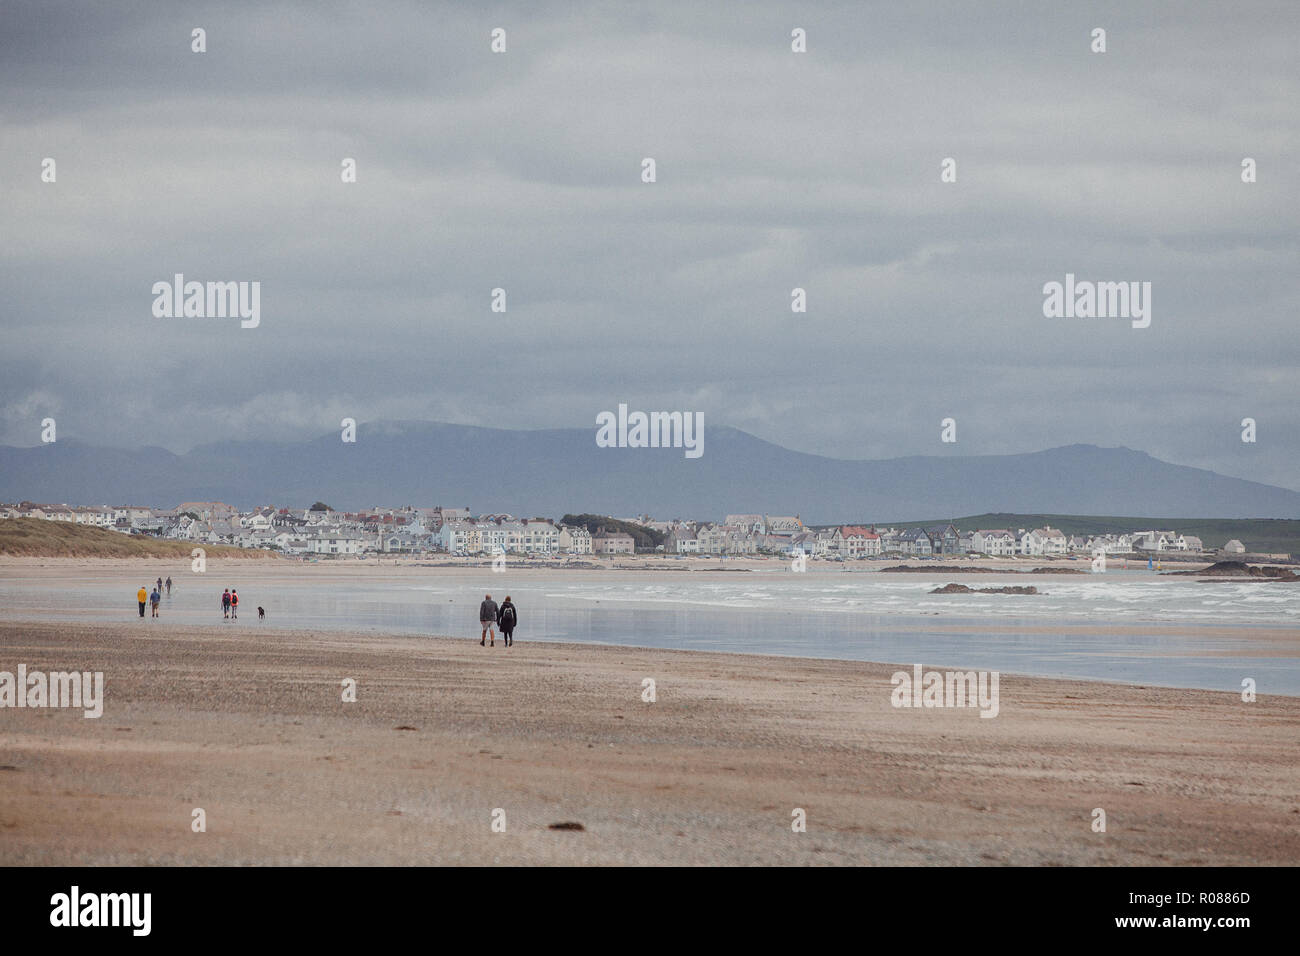 People walking along Cymyran beach, Rhosneigr, Anglesey, North Wales, UK, the Snowdonia Mountain Range in the background - Stock Image